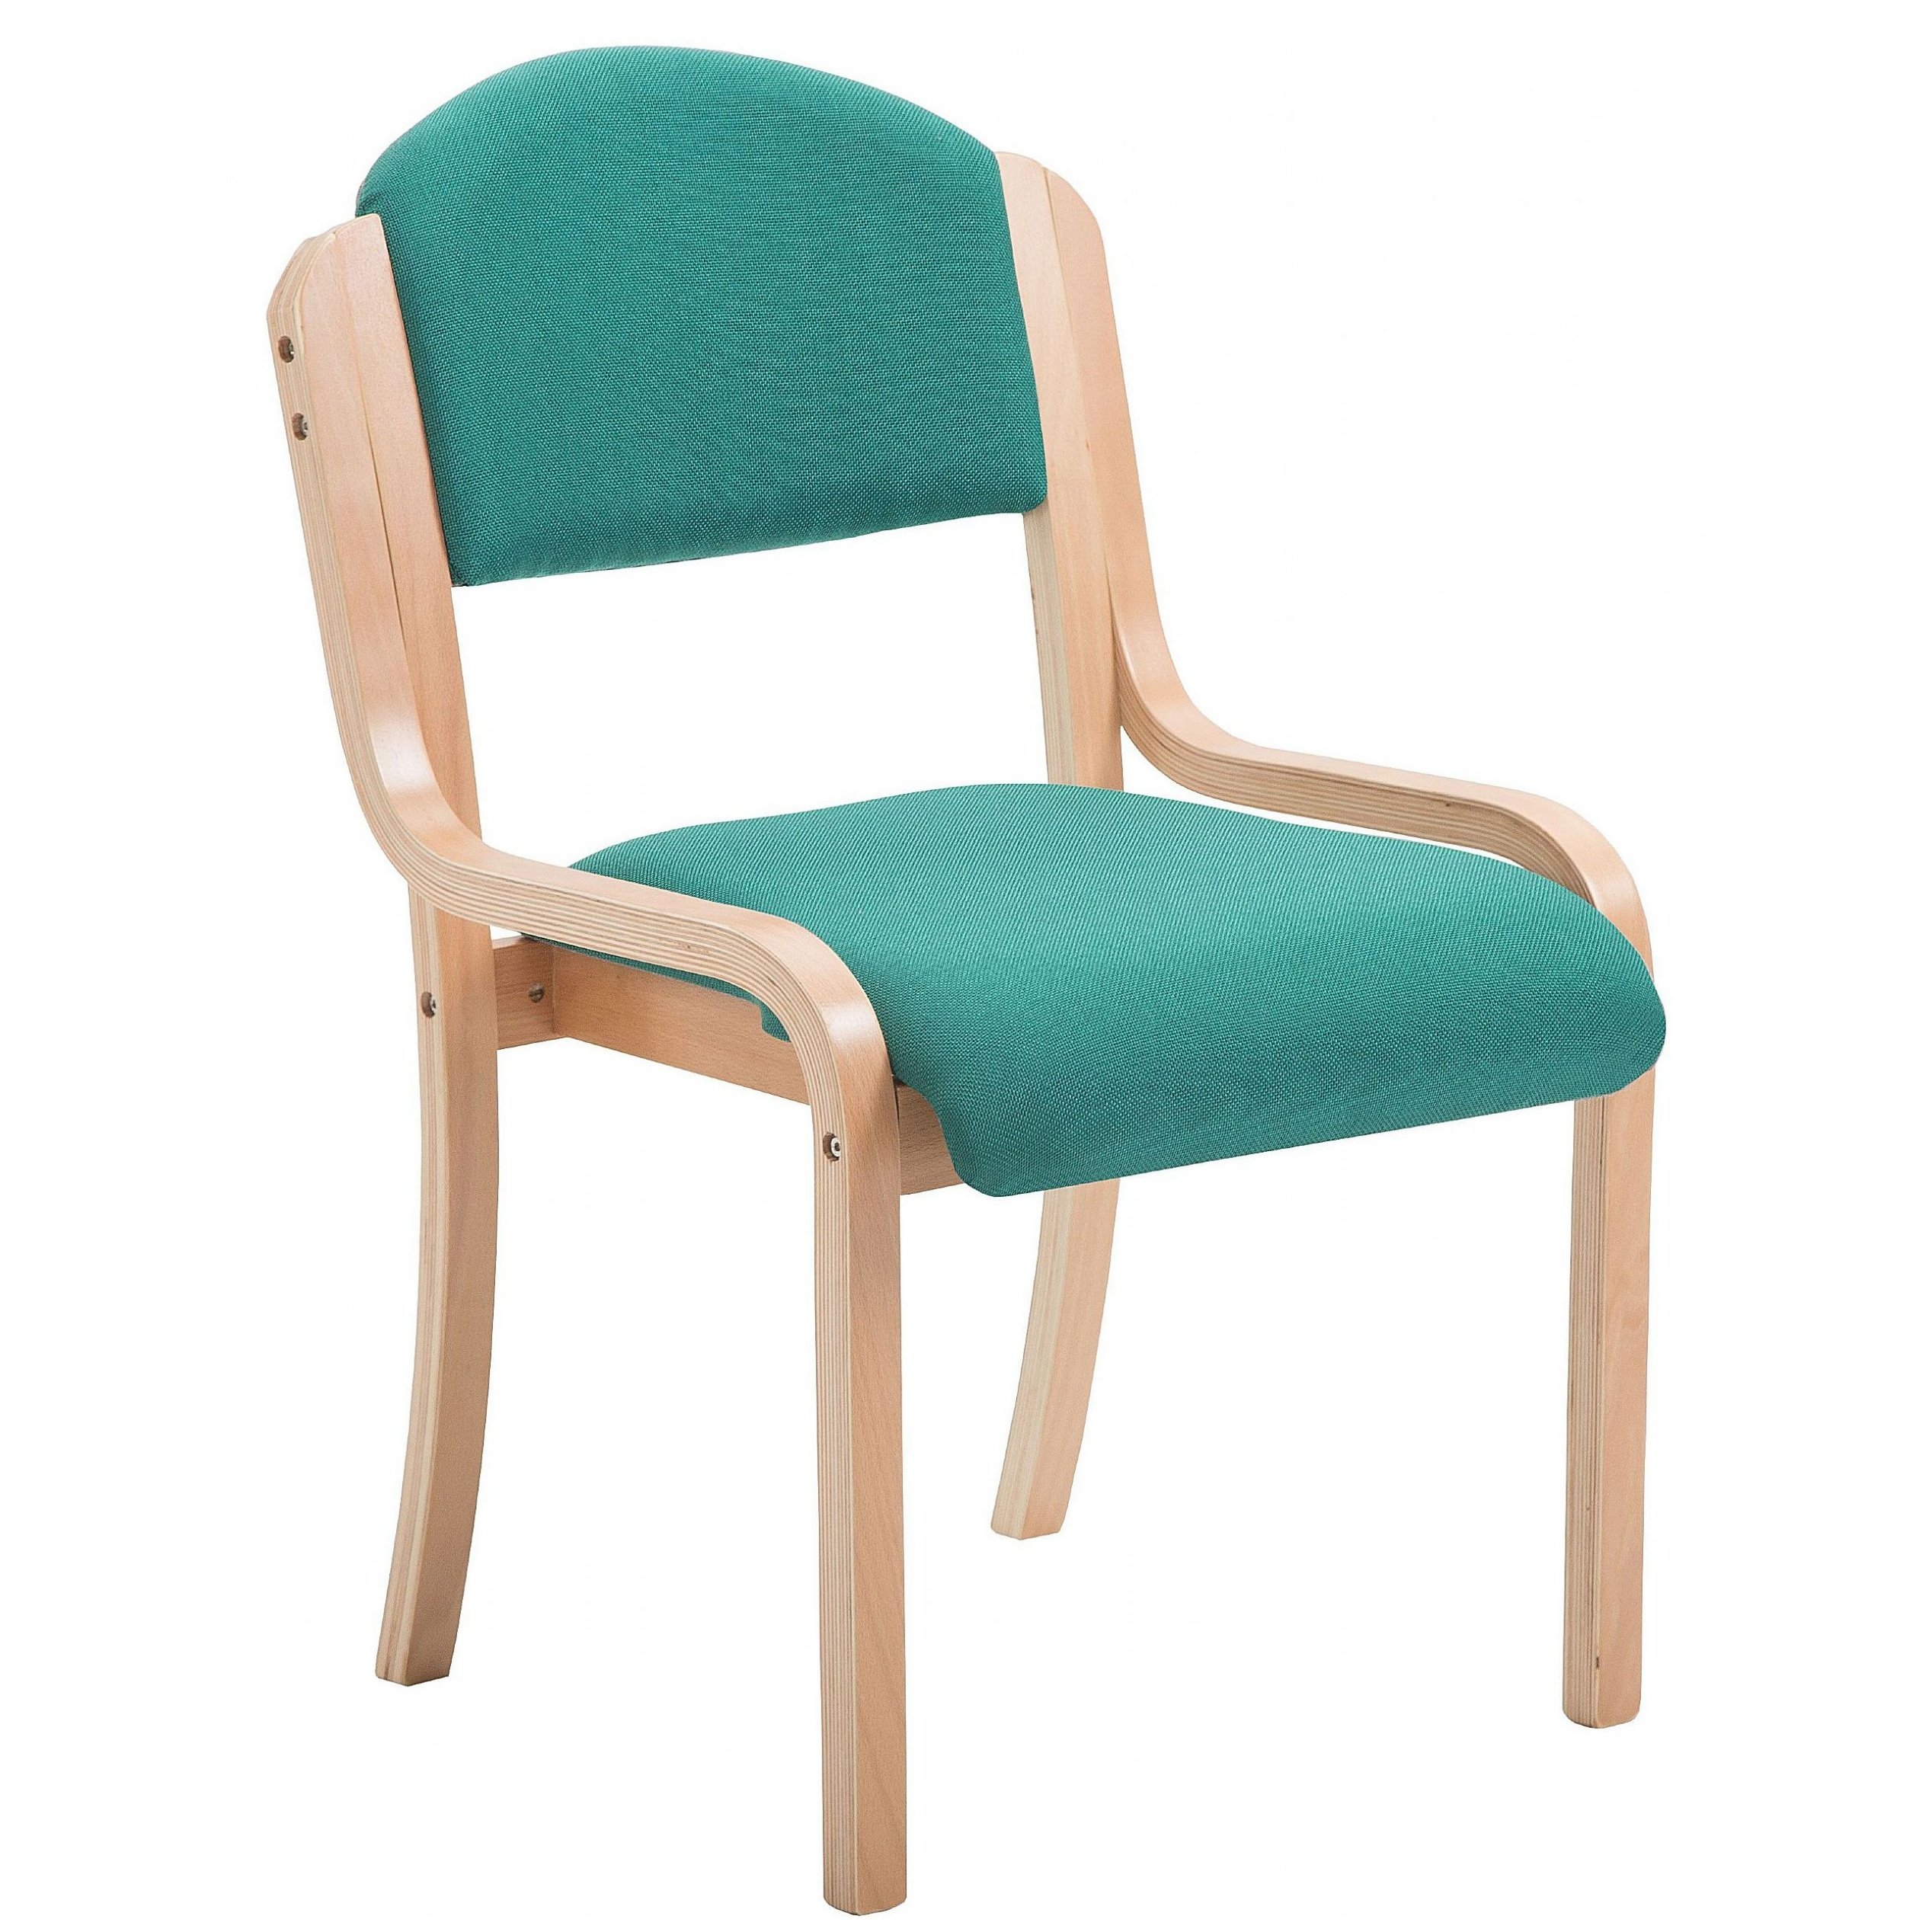 Devonshire Stacking Chairs From Our Office Chairs Range